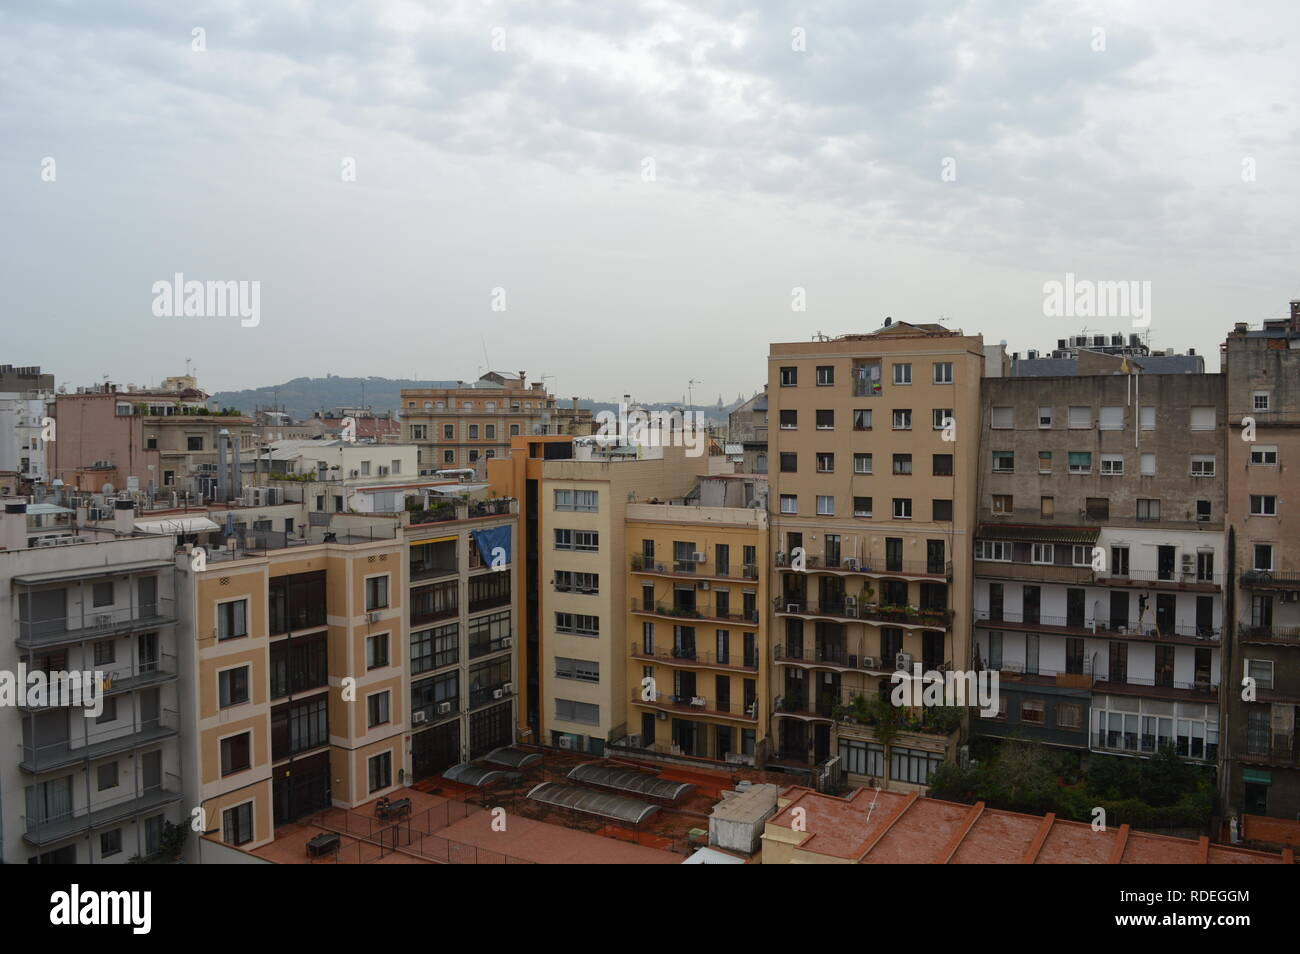 An image of a view of the city from a balcony Barcelona. - Stock Image